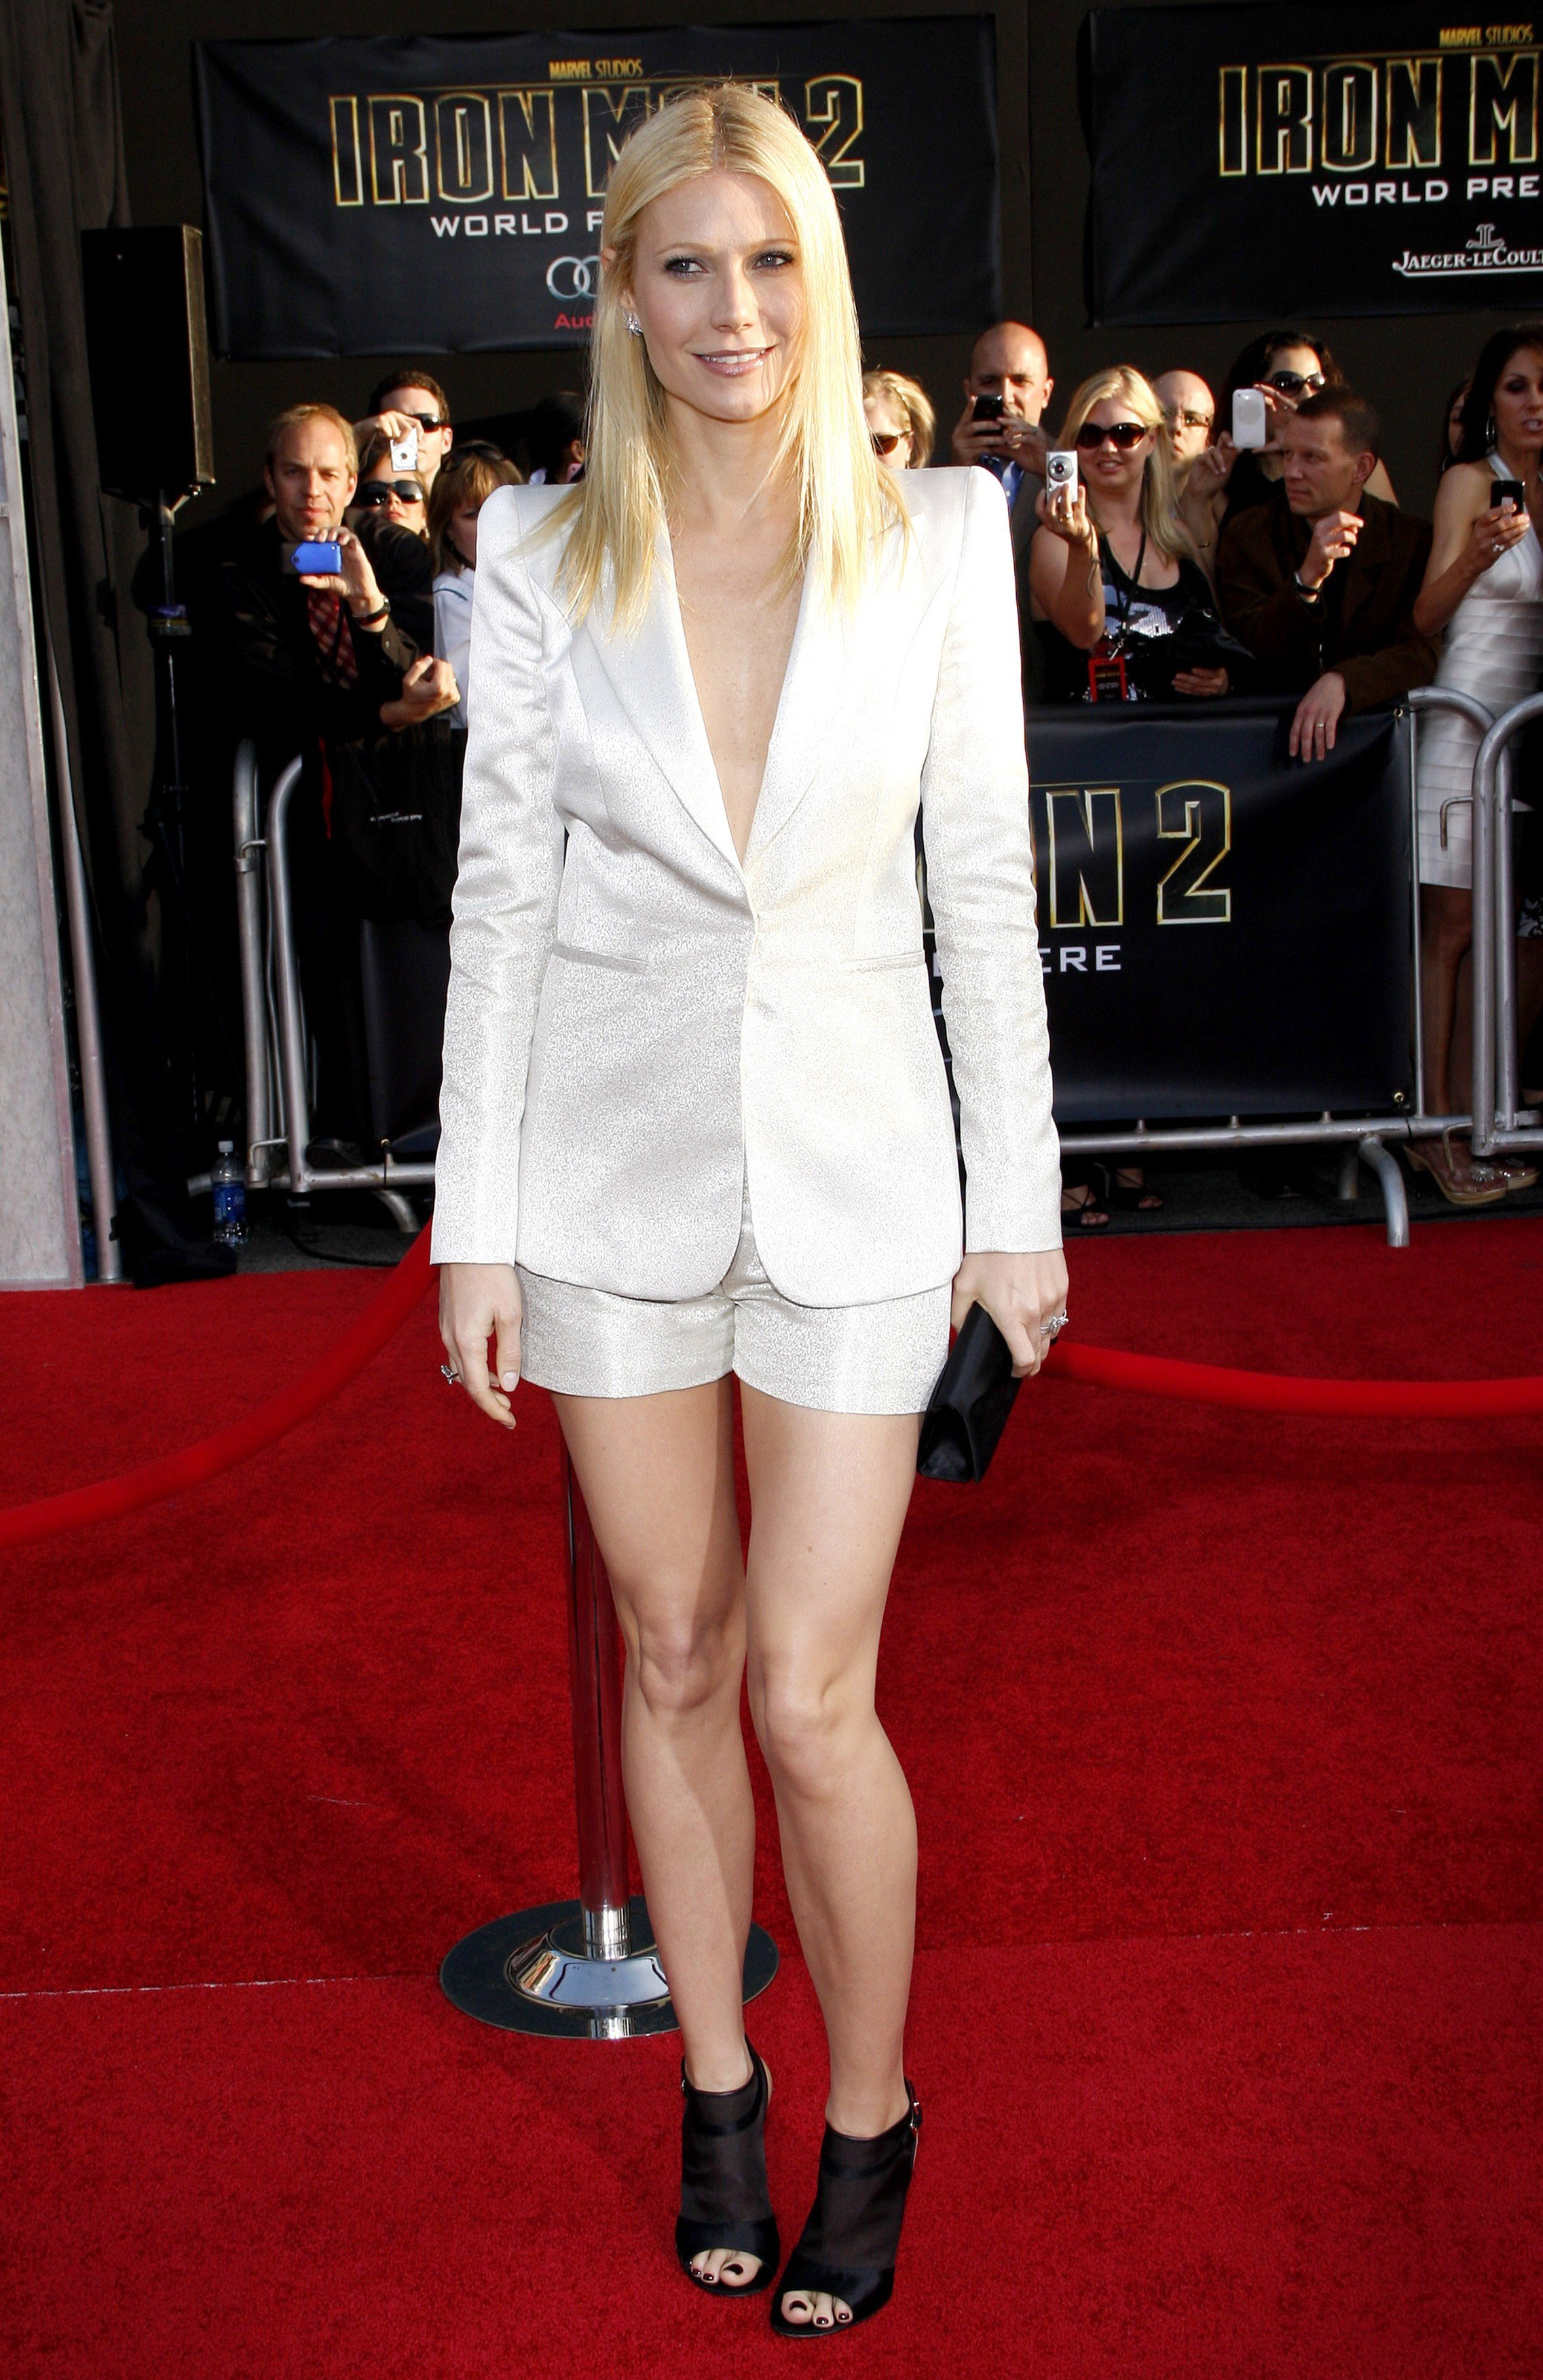 39916, HOLLYWOOD, CALIFORNIA - Monday April 26, 2010. Gwyneth Paltrow at the World premiere of